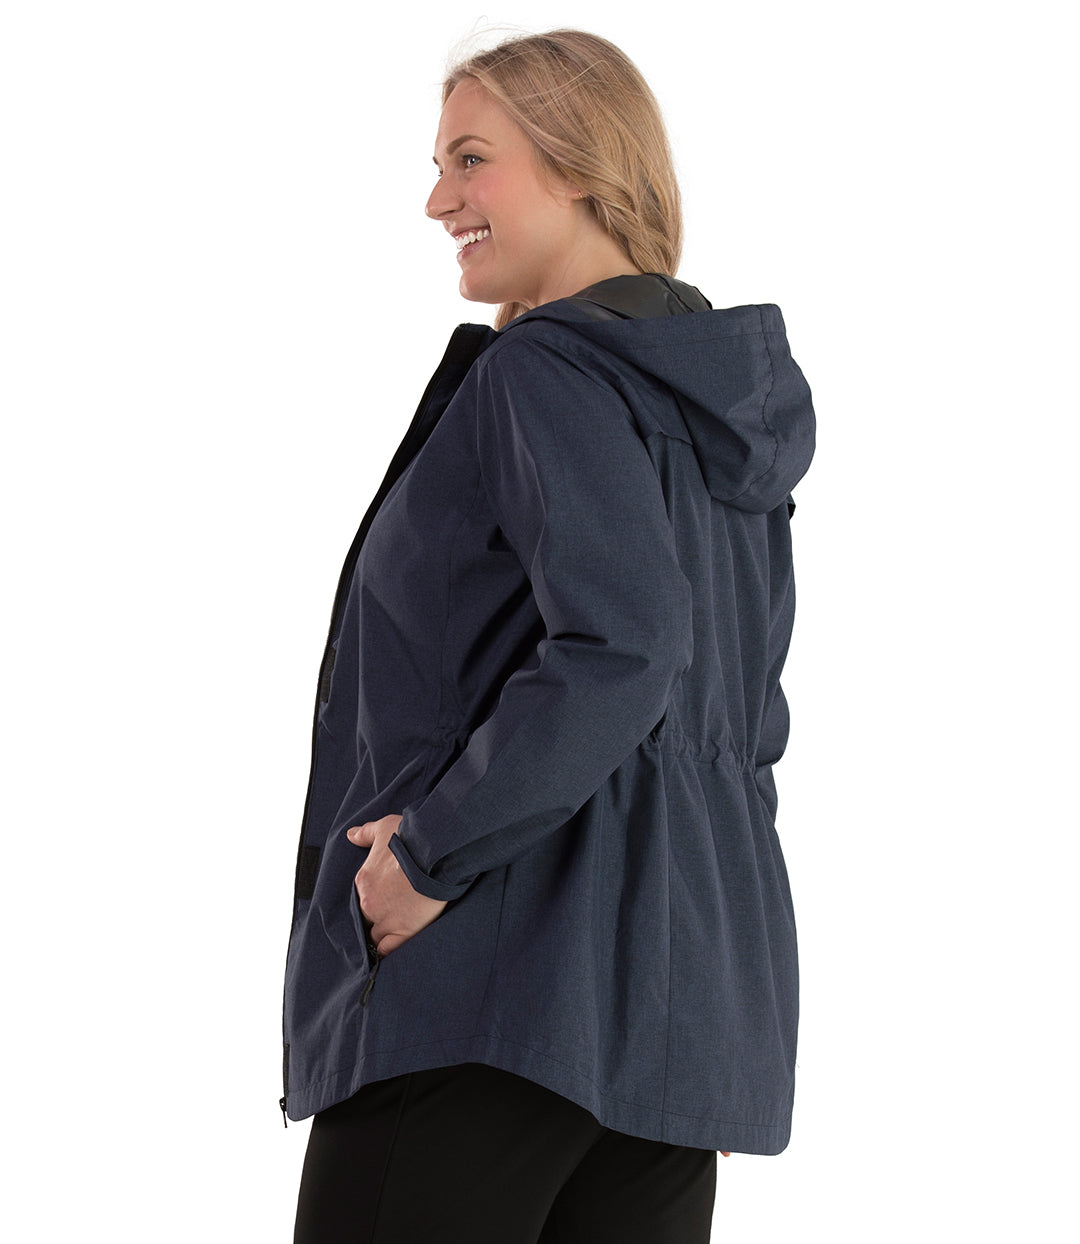 Plus Size Women's Rain Jacket